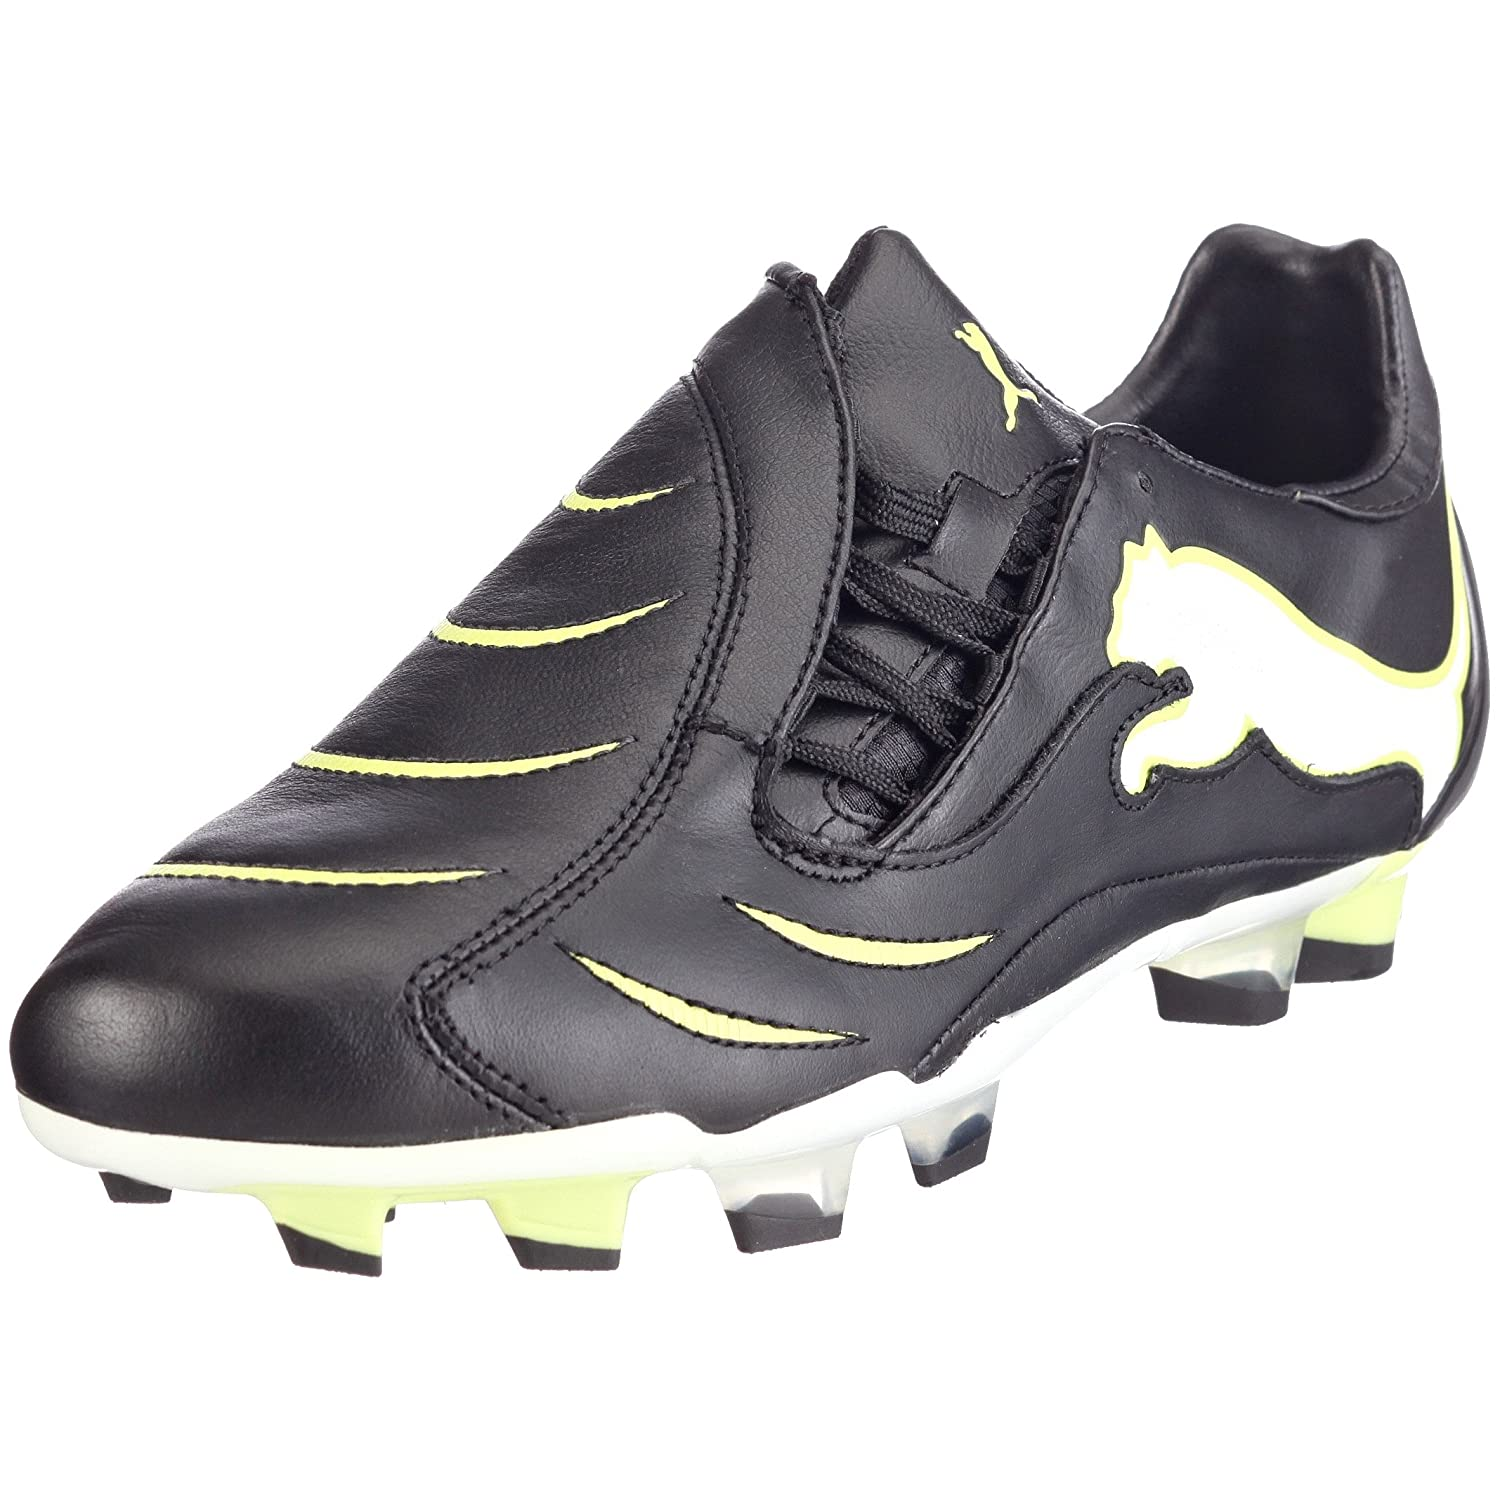 Puma Power Cat 2.10 FG